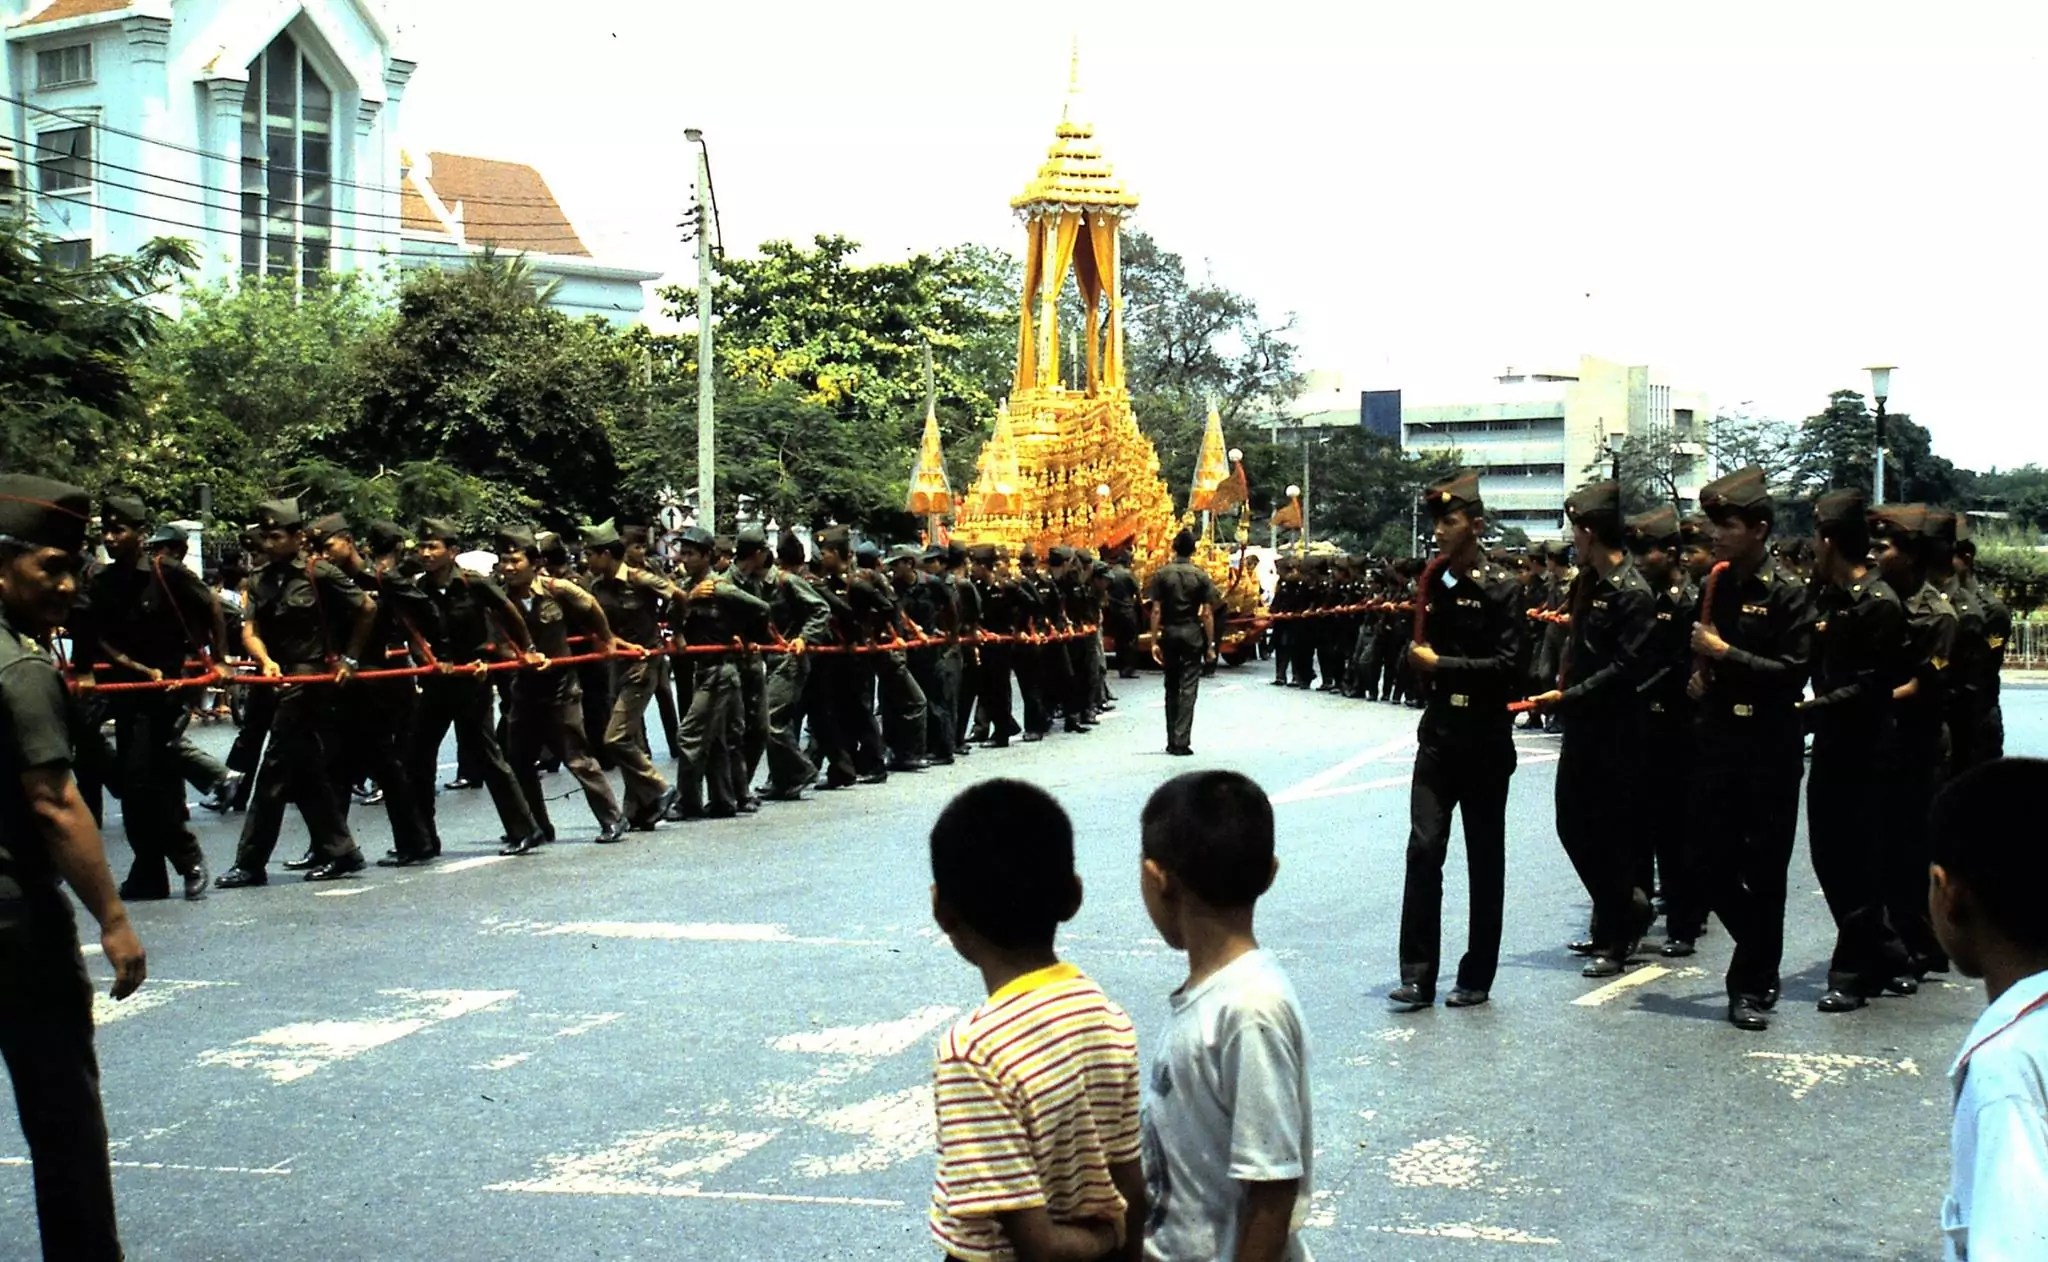 A ROYAL FUBERAL IS TAKING PKACE AT BANGKOK 1985